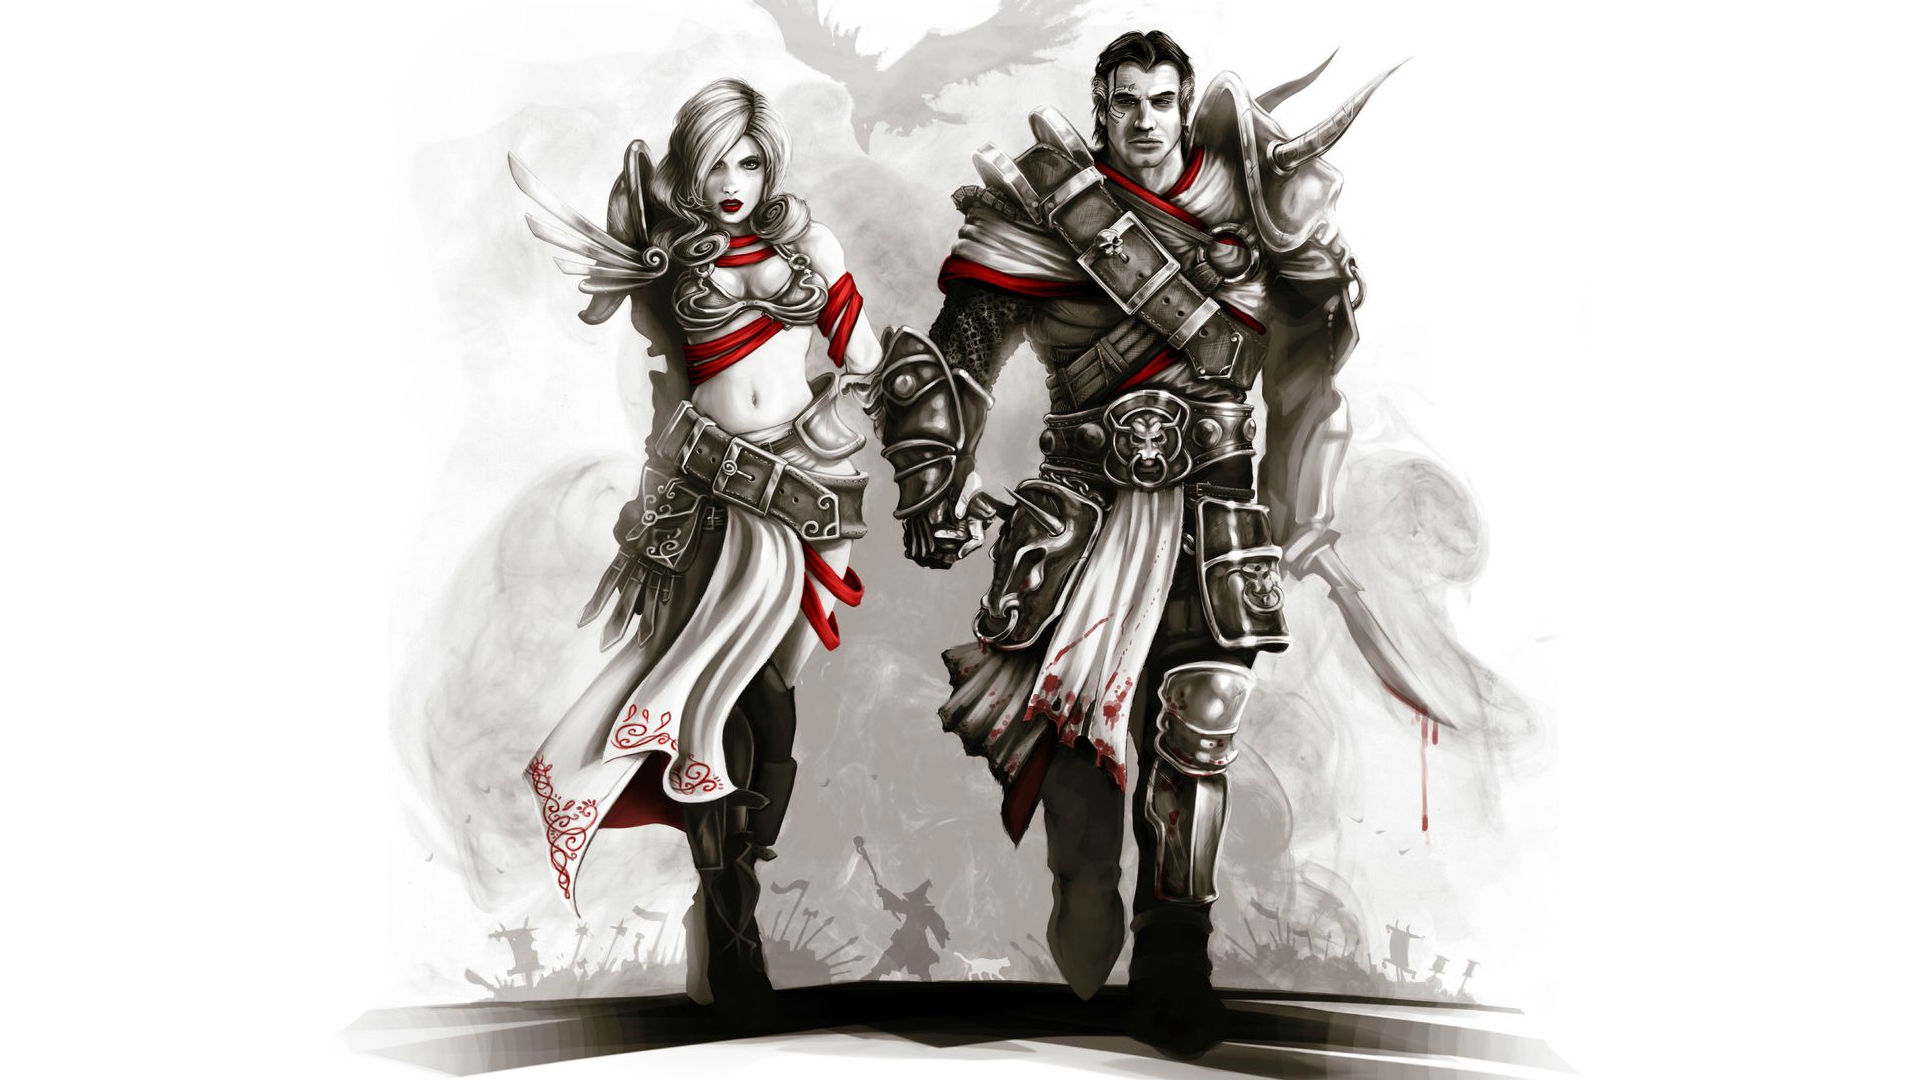 11 Divinity: Original Sin HD Wallpapers